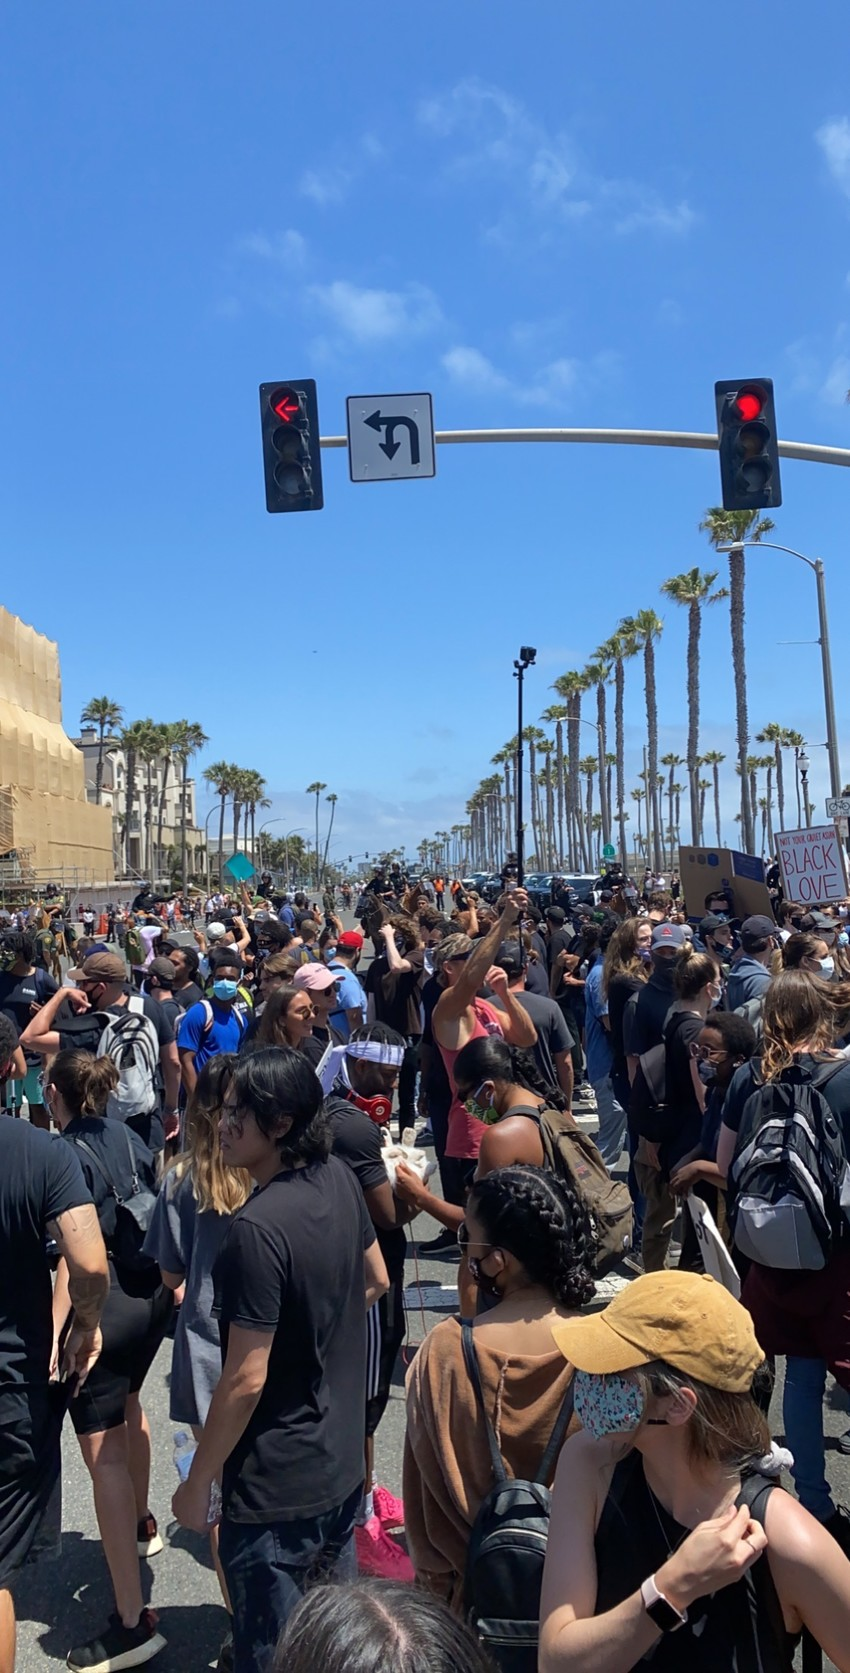 Black Lives Matter march, Huntington Beach, California, 07 June 20 - Full Photo Set credit/Copyright to: Celina Sosefina Yandall